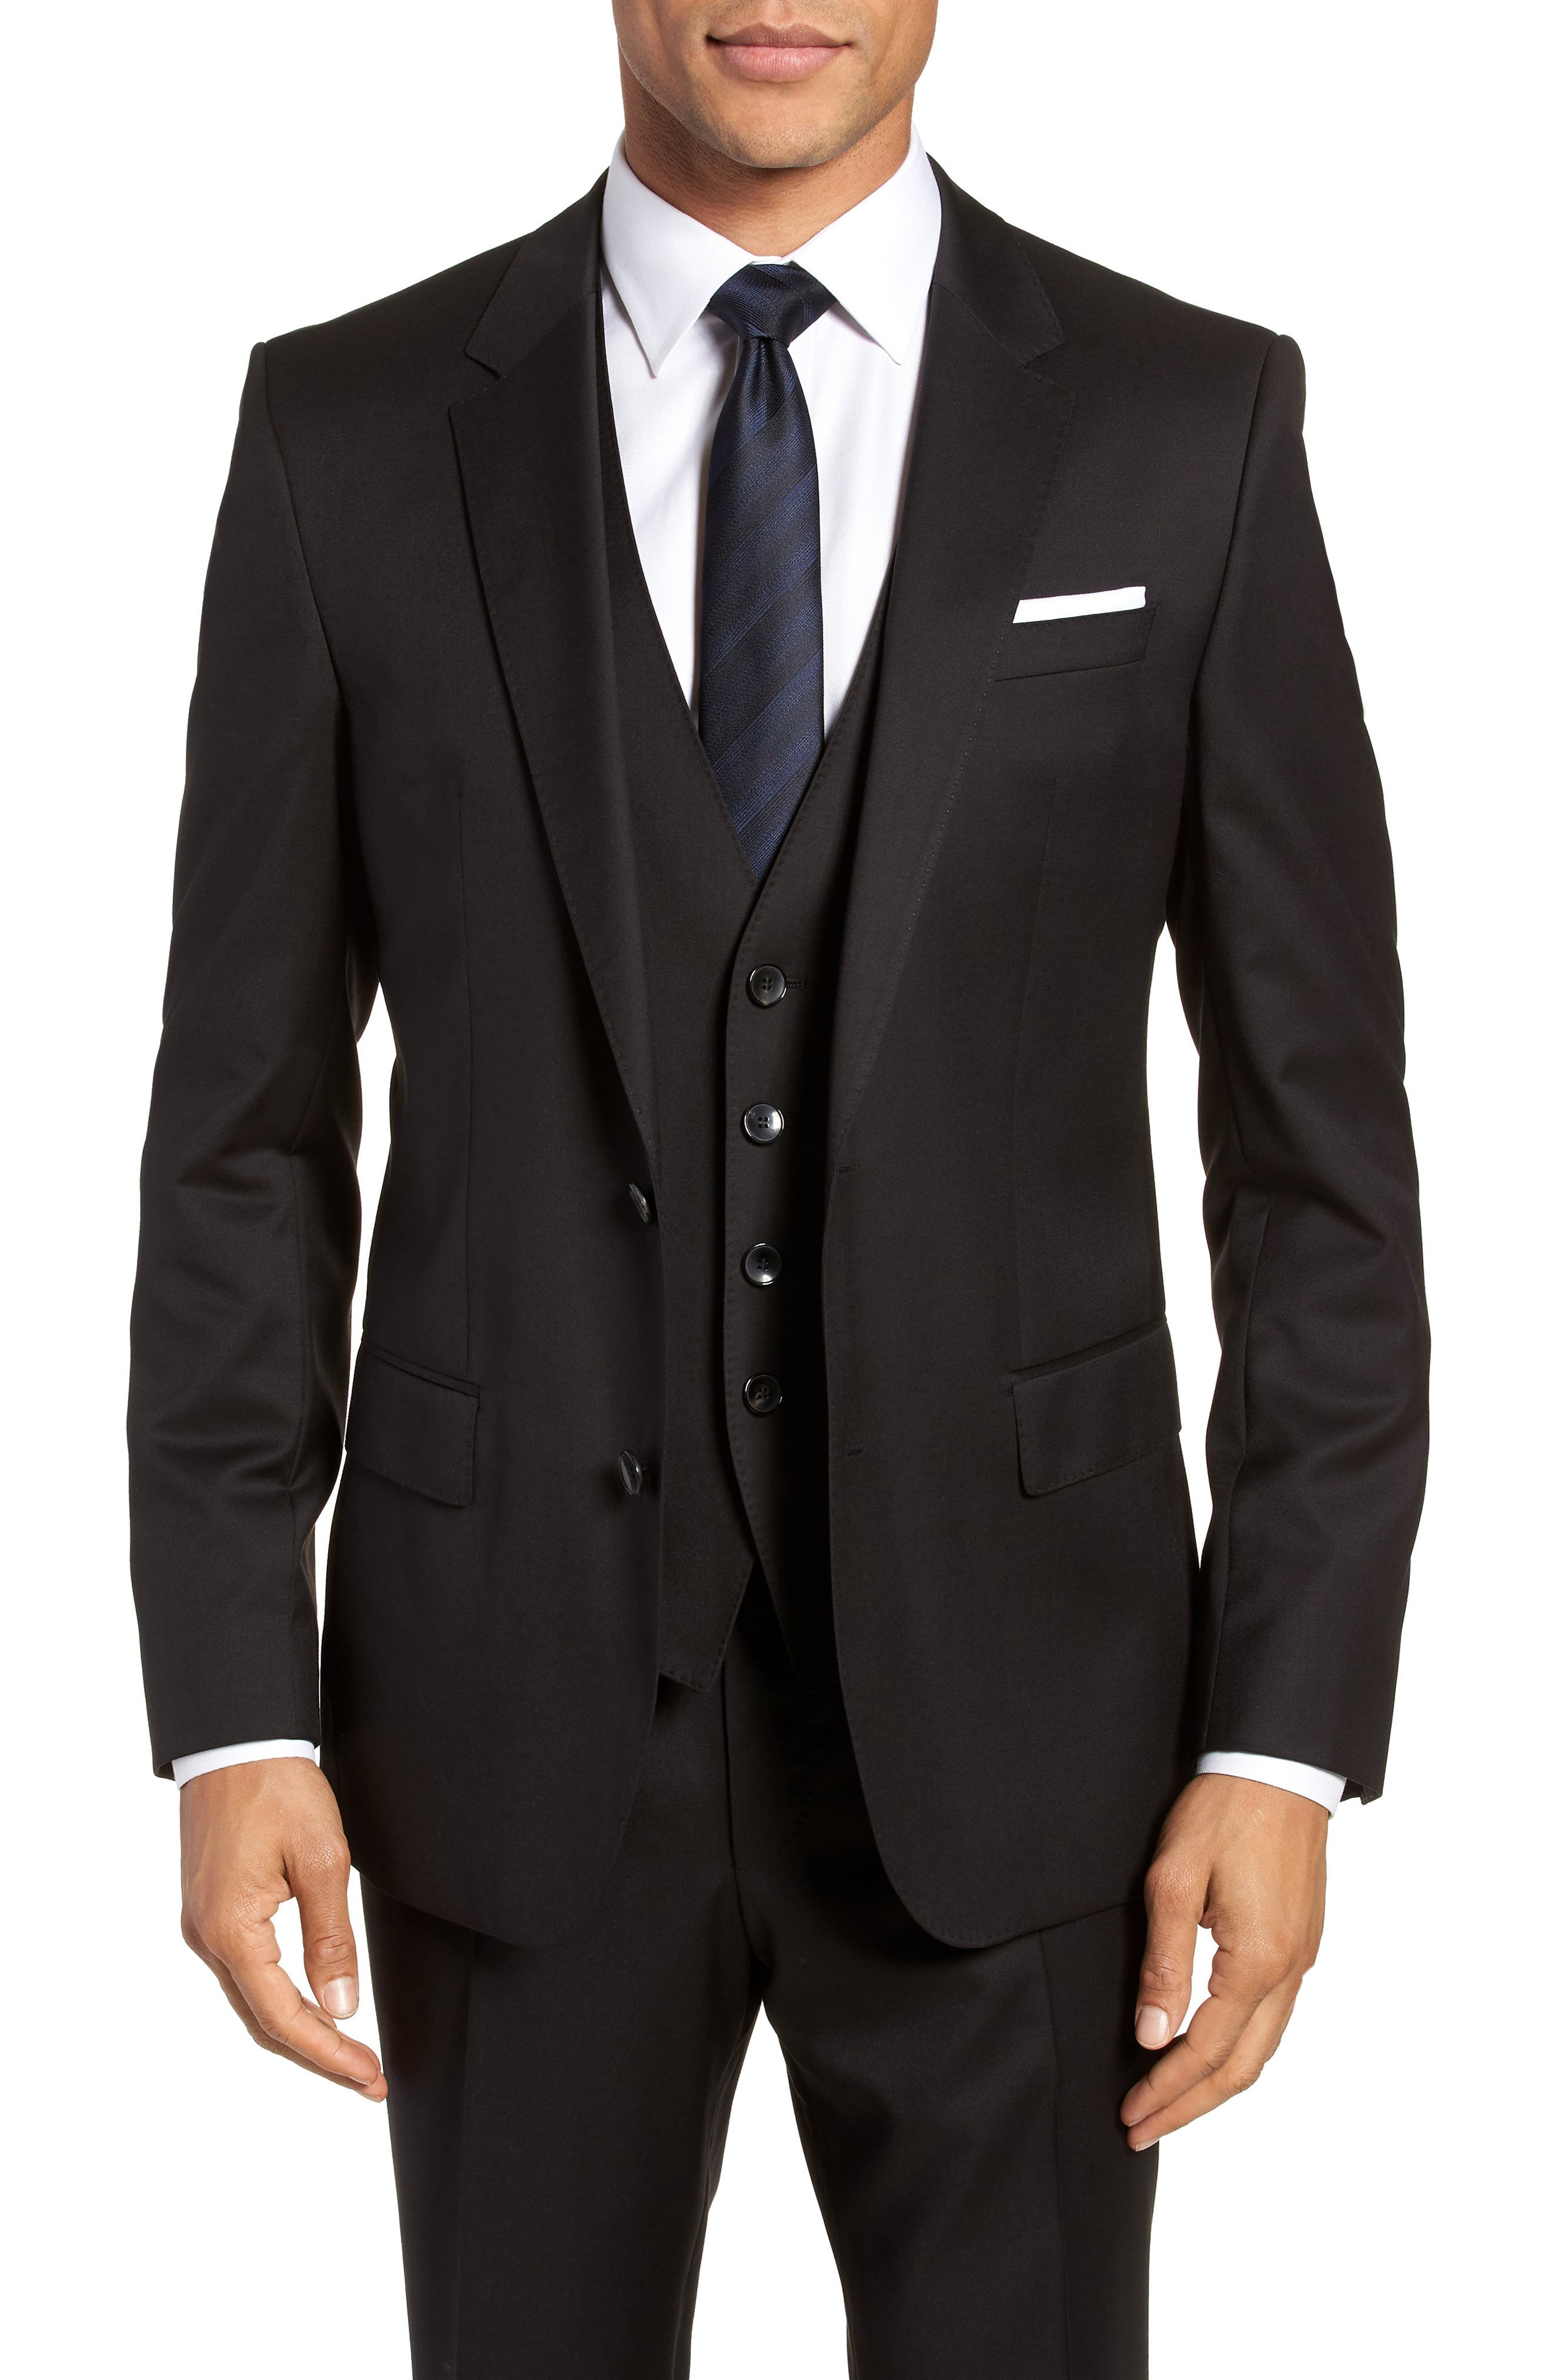 Hayes CYL Trim Fit Solid Wool Sport Coat,                             Main thumbnail 1, color,                             BLACK